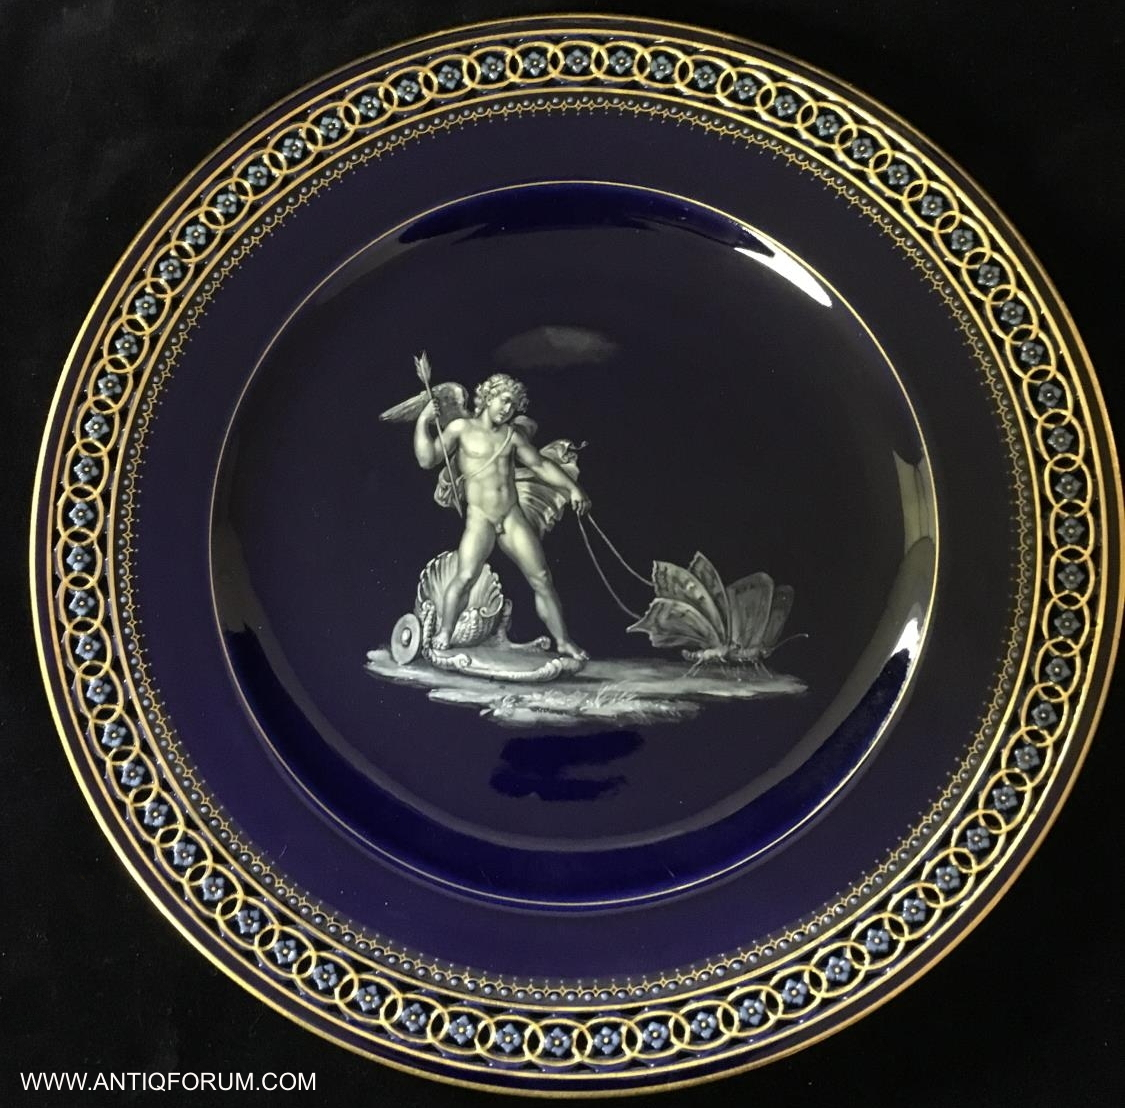 Antique Meissen Cabinet Plates Find out your item\u0027s current market value! Sell it! All for FREE! Please CONTACT US for a FREE no-obligation online appraisal & Meissen Plates - Free Online Appraisals - Antique Meissen Plates